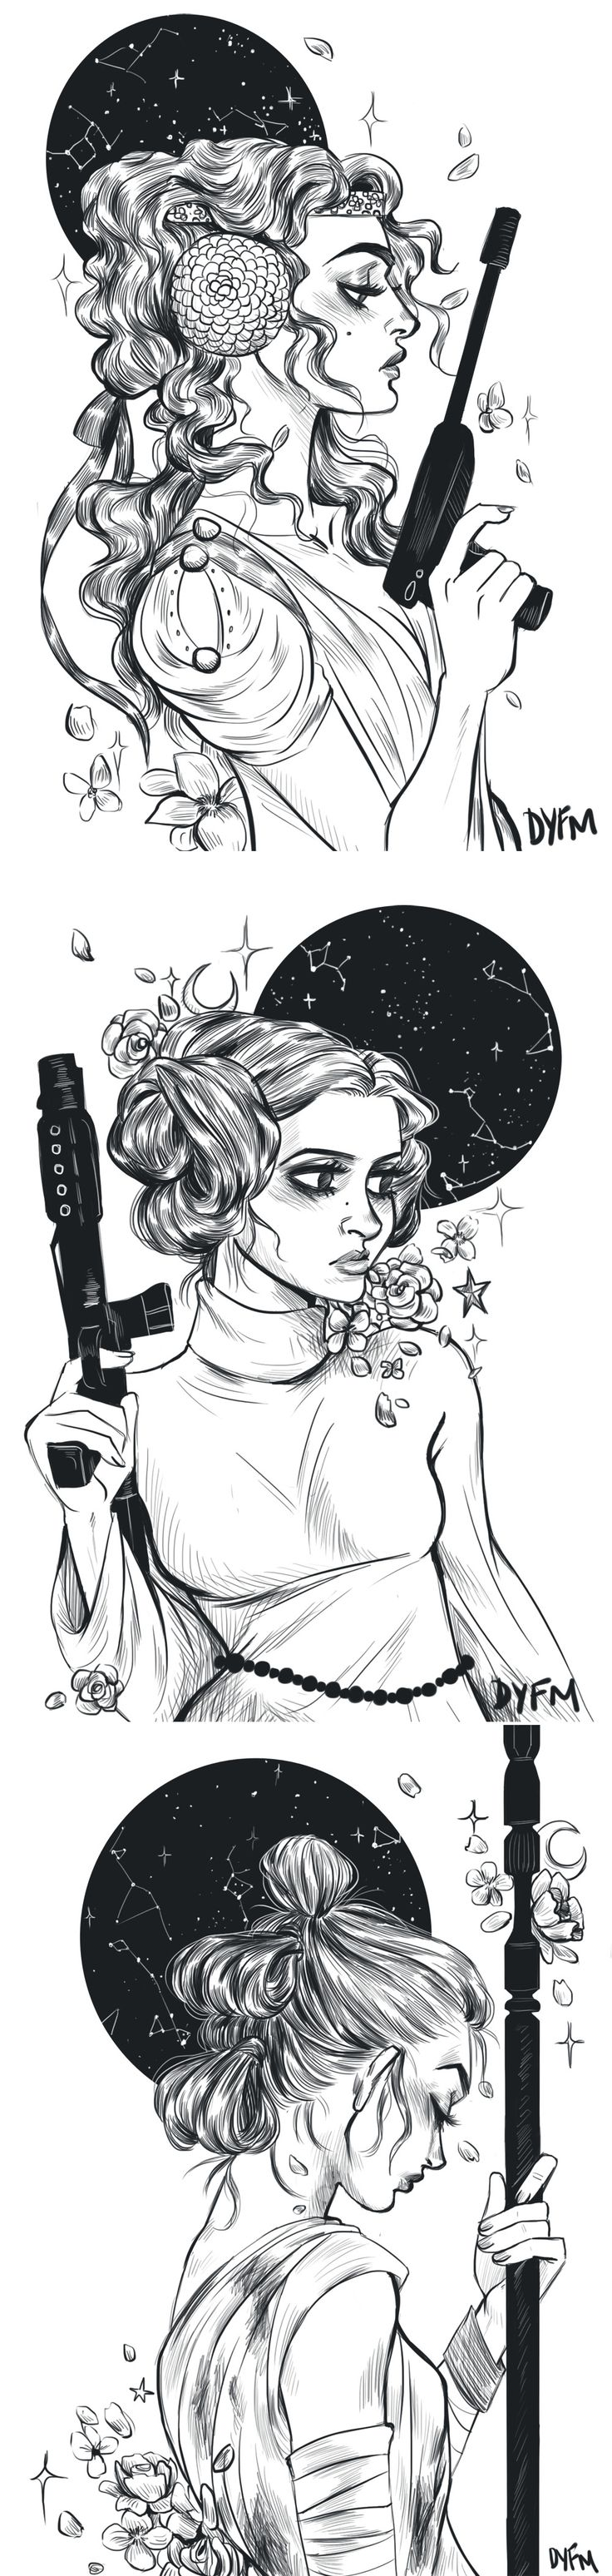 support your local space ladies - this art style is amazing